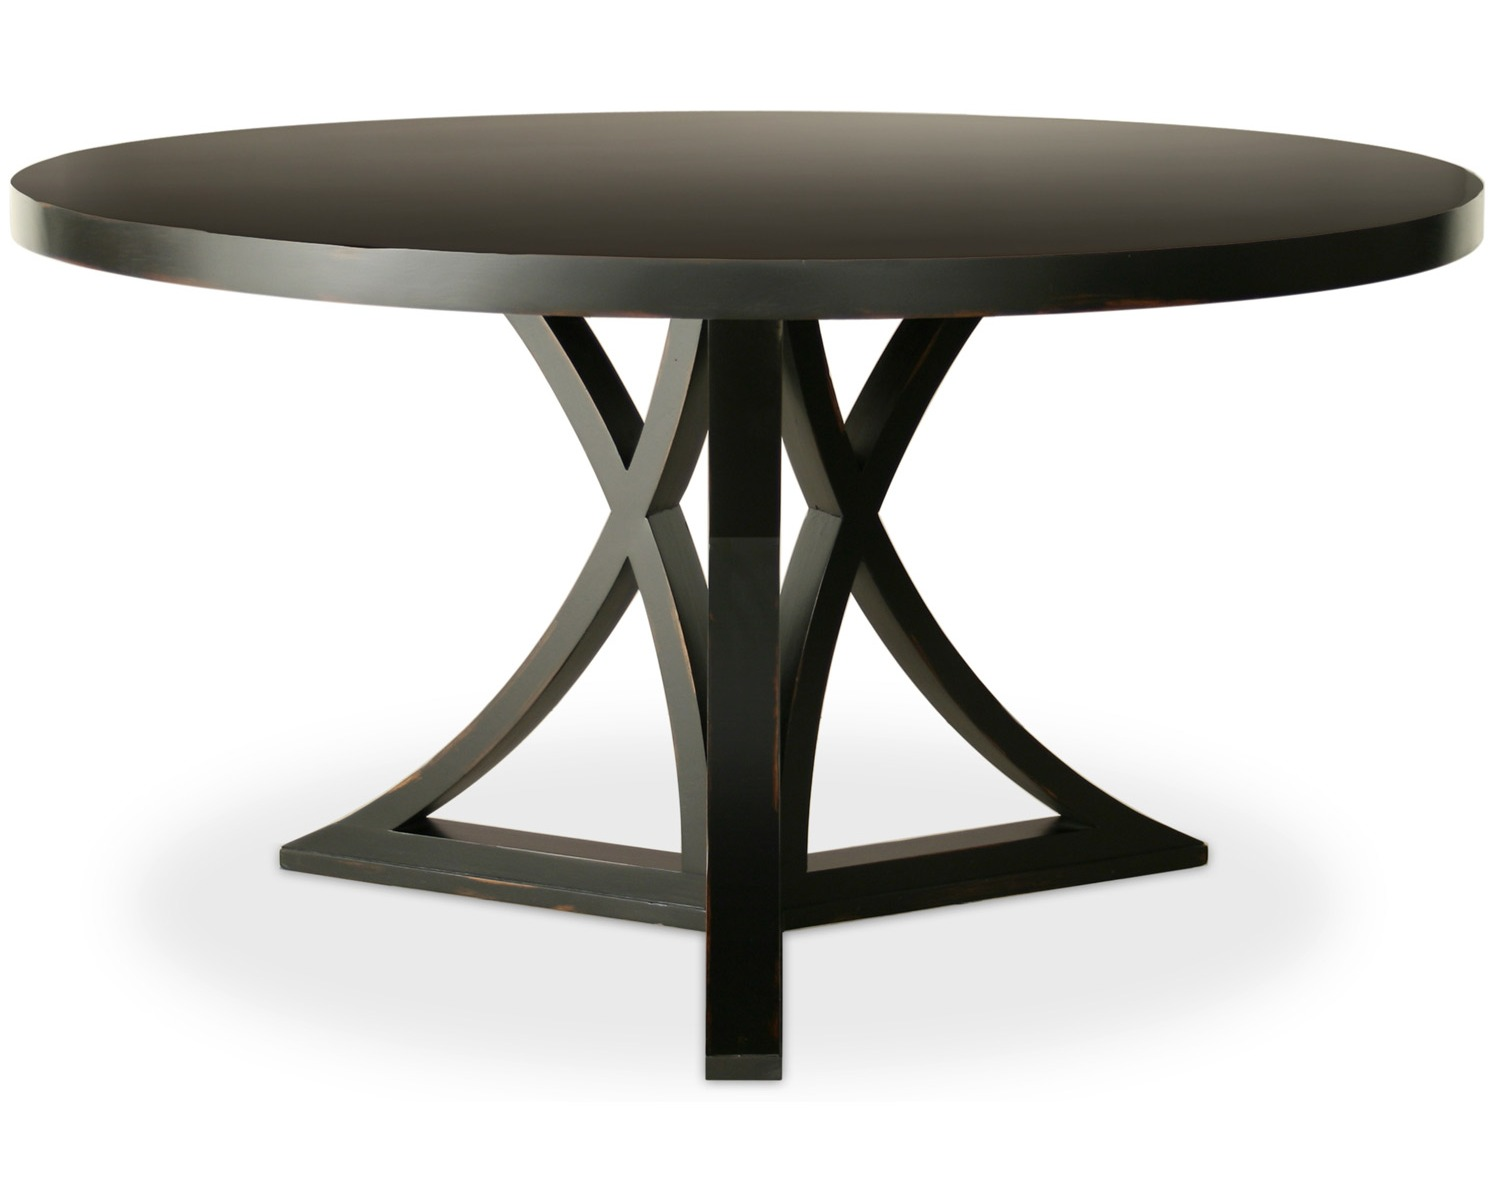 Black Wood 60 Inch Round Pedestal Dining Table Furniture Raysa House